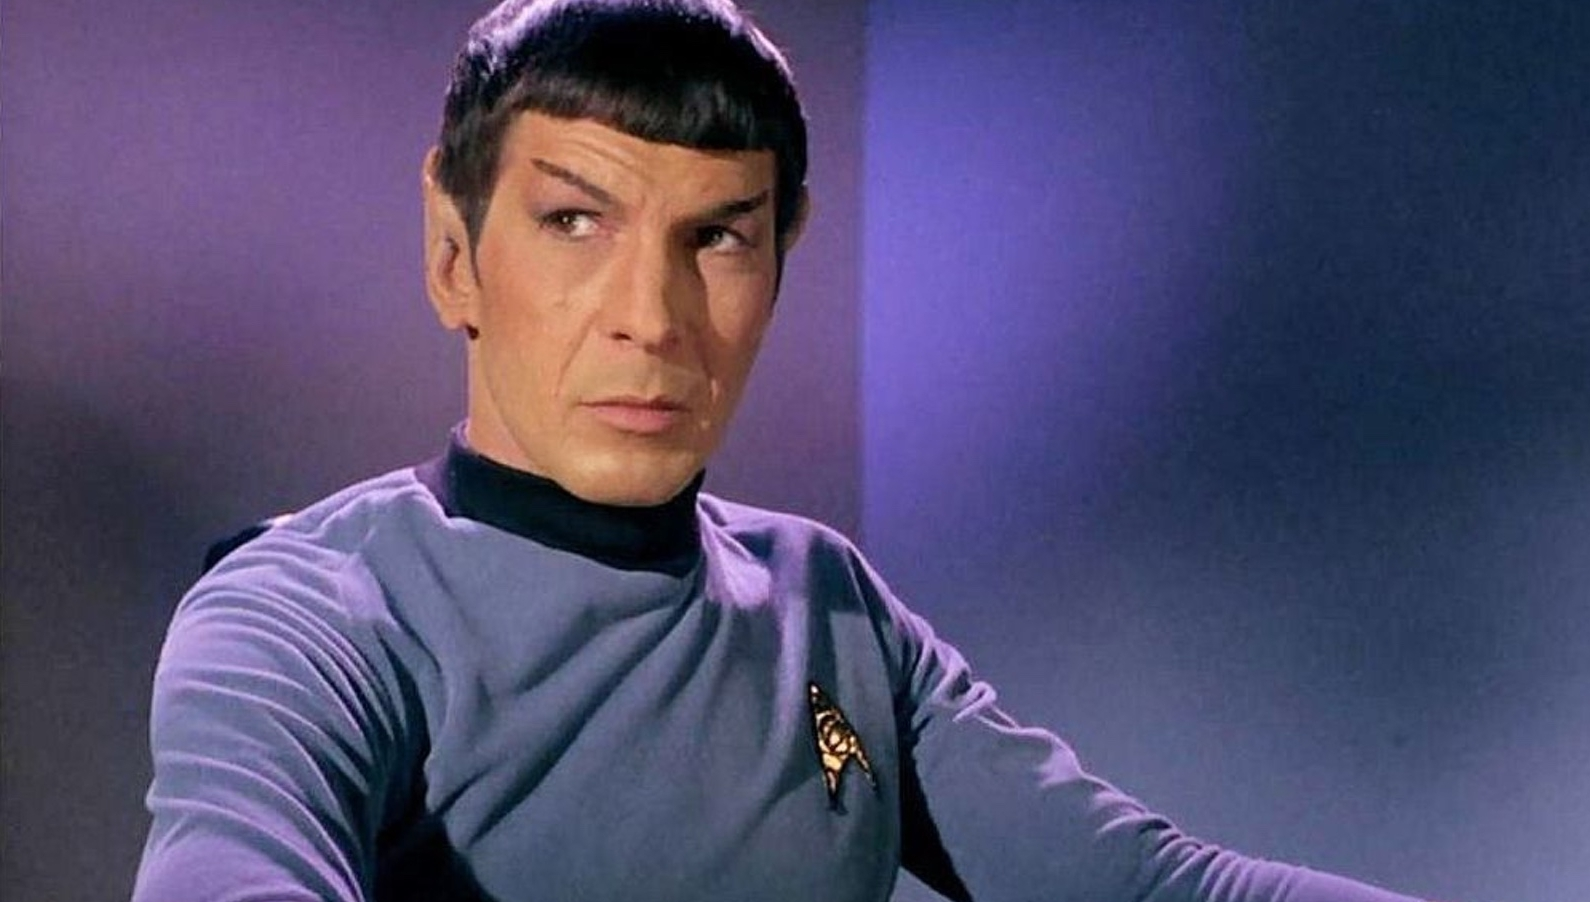 The Internet Reacts To Star Trek: Discovery's Bearded Spock